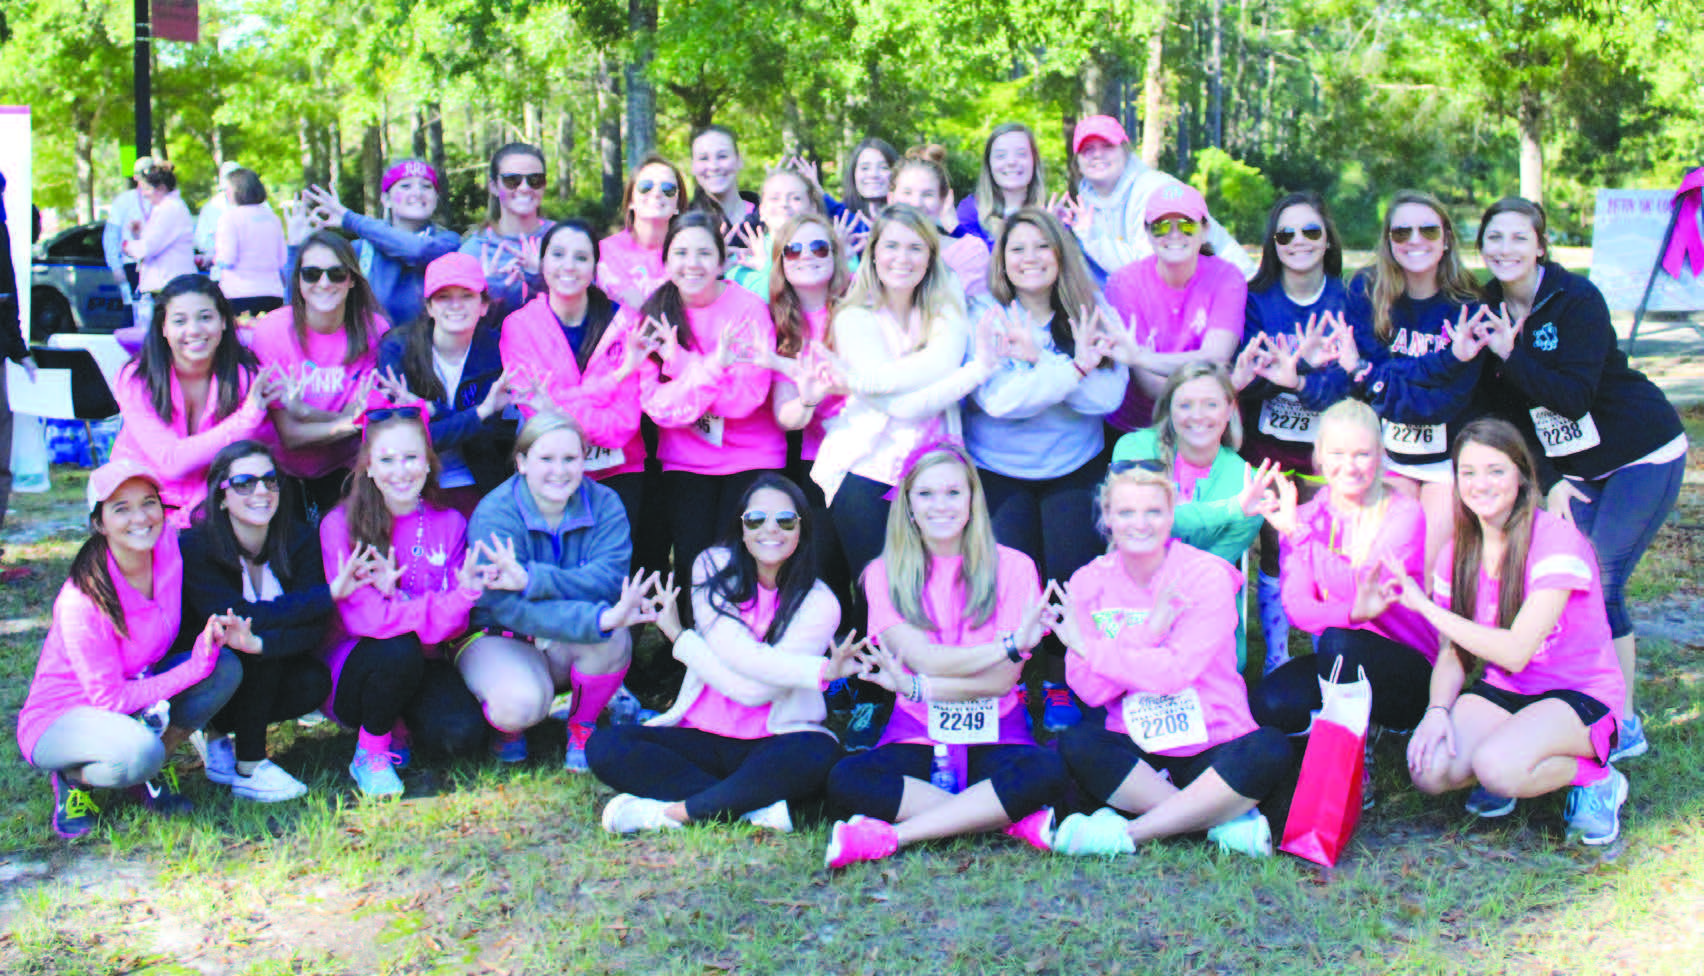 Members of Zeta Tau Alpha sponsor a 5K to raise money for breast cancer education and awareness. FMU and members of the community join them for the run.